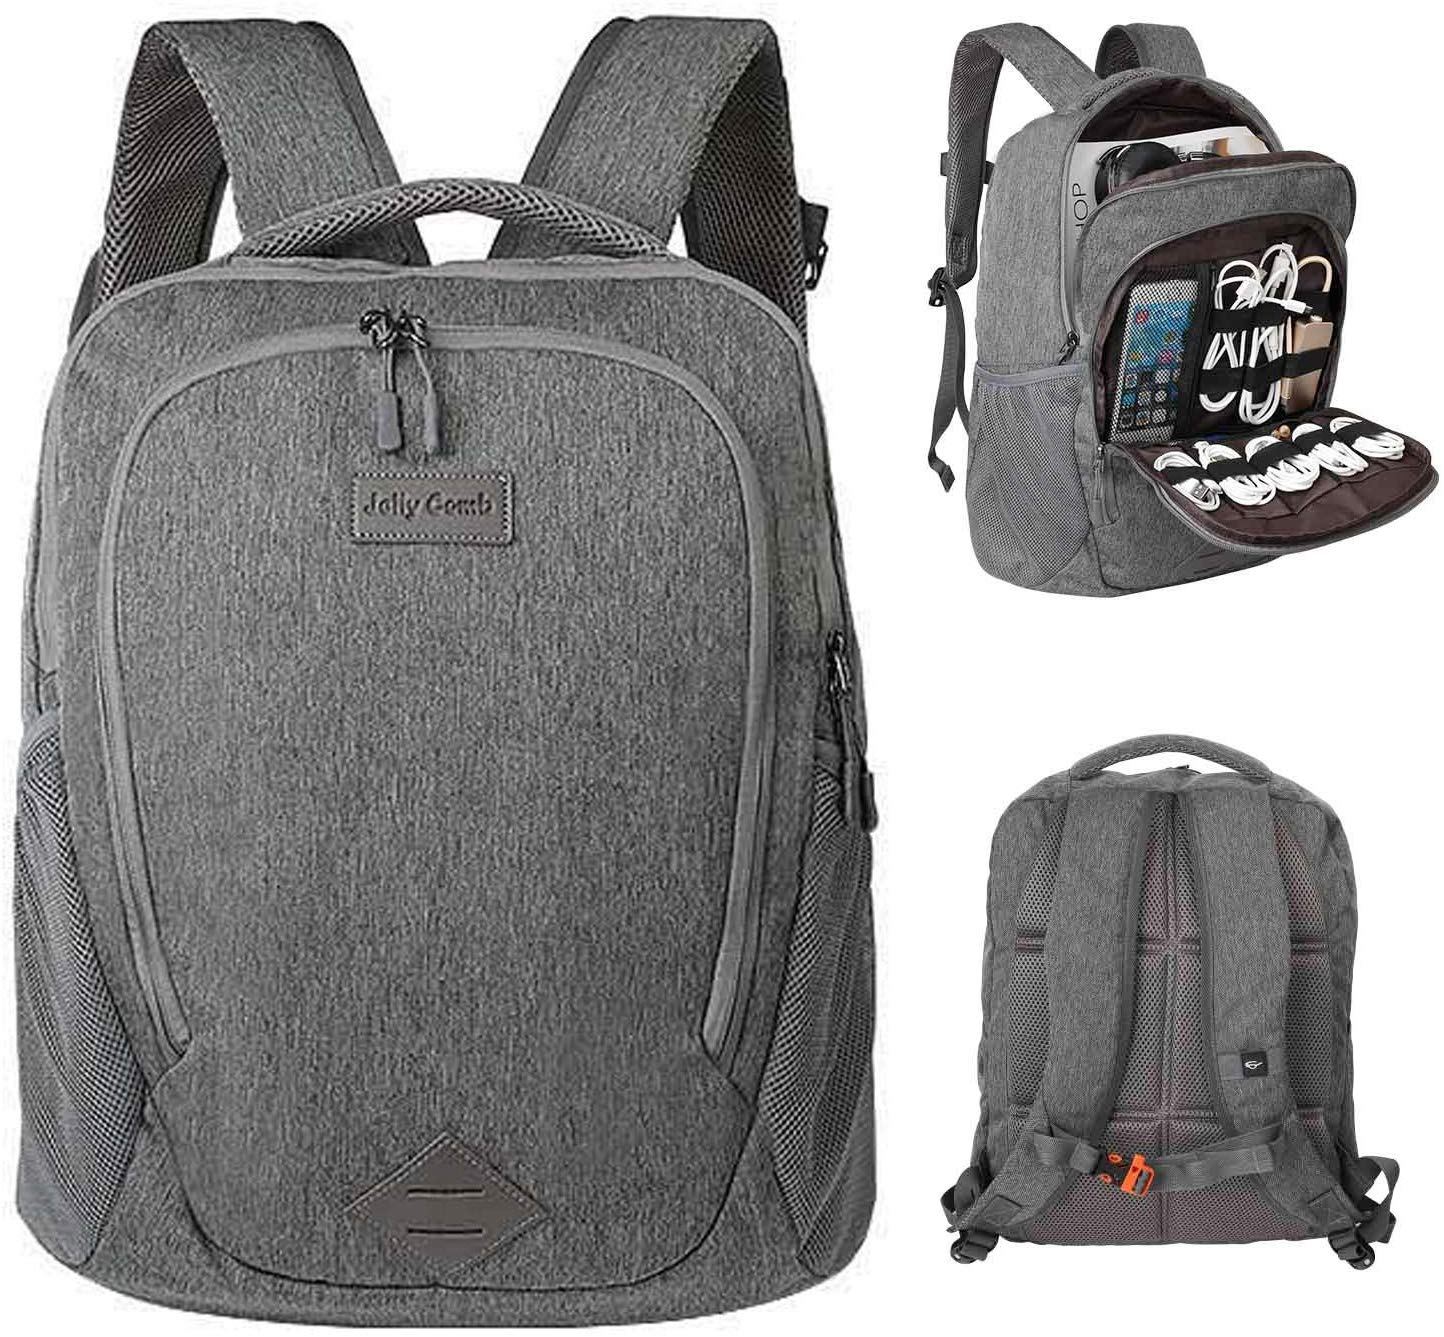 Laptop Accessories Organizer Electronic Travel Laptop Backpack 15.6'' Lightweight Computer Bag for MacBook, Laptop Charger, Cables, Power Bank - $16.41